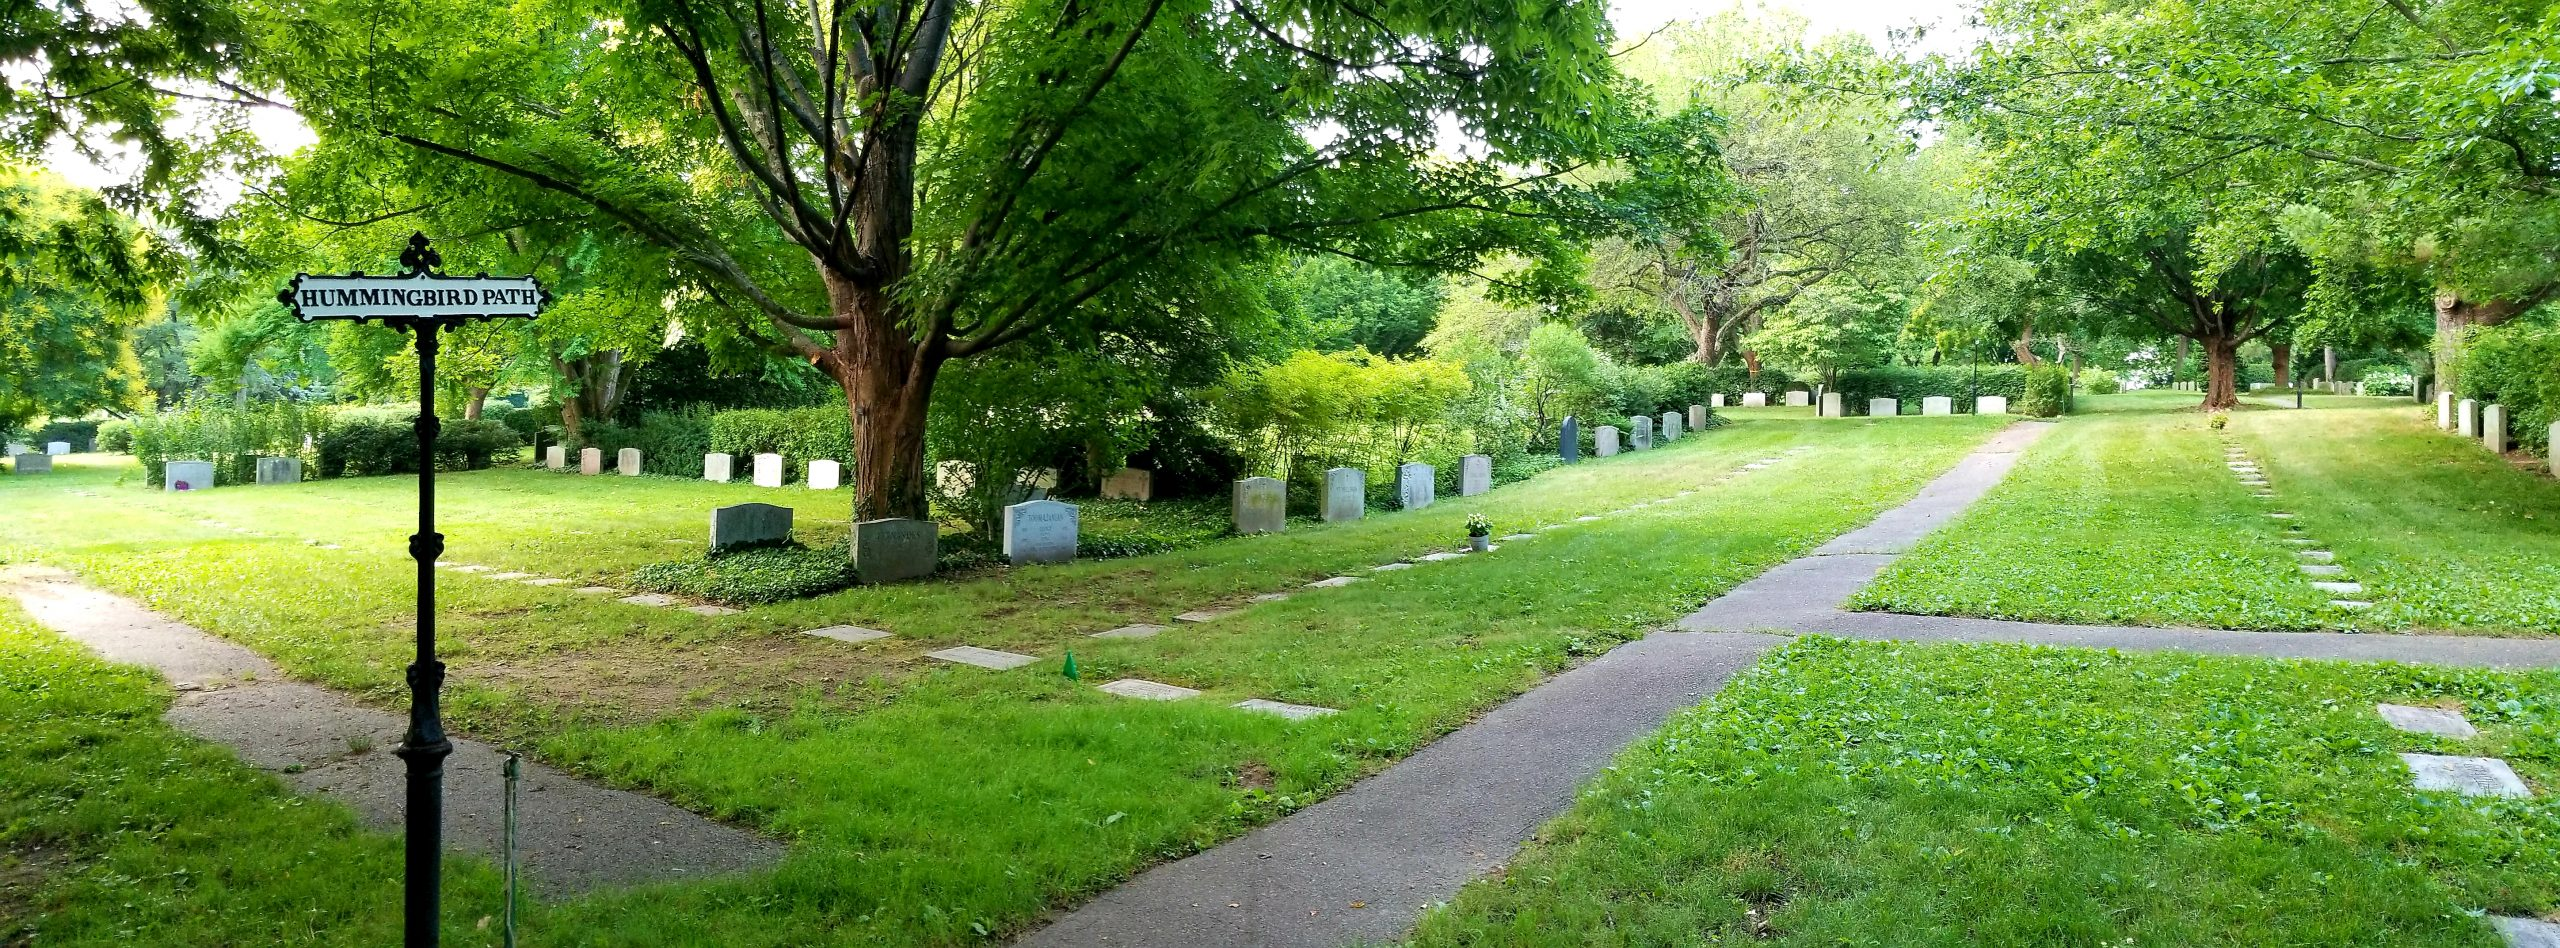 A flat grassy area, enclosed by hedges with linear rows of granite memorials. A row of upright monuments frames the area and row flat makers appear closer to the paved paths.